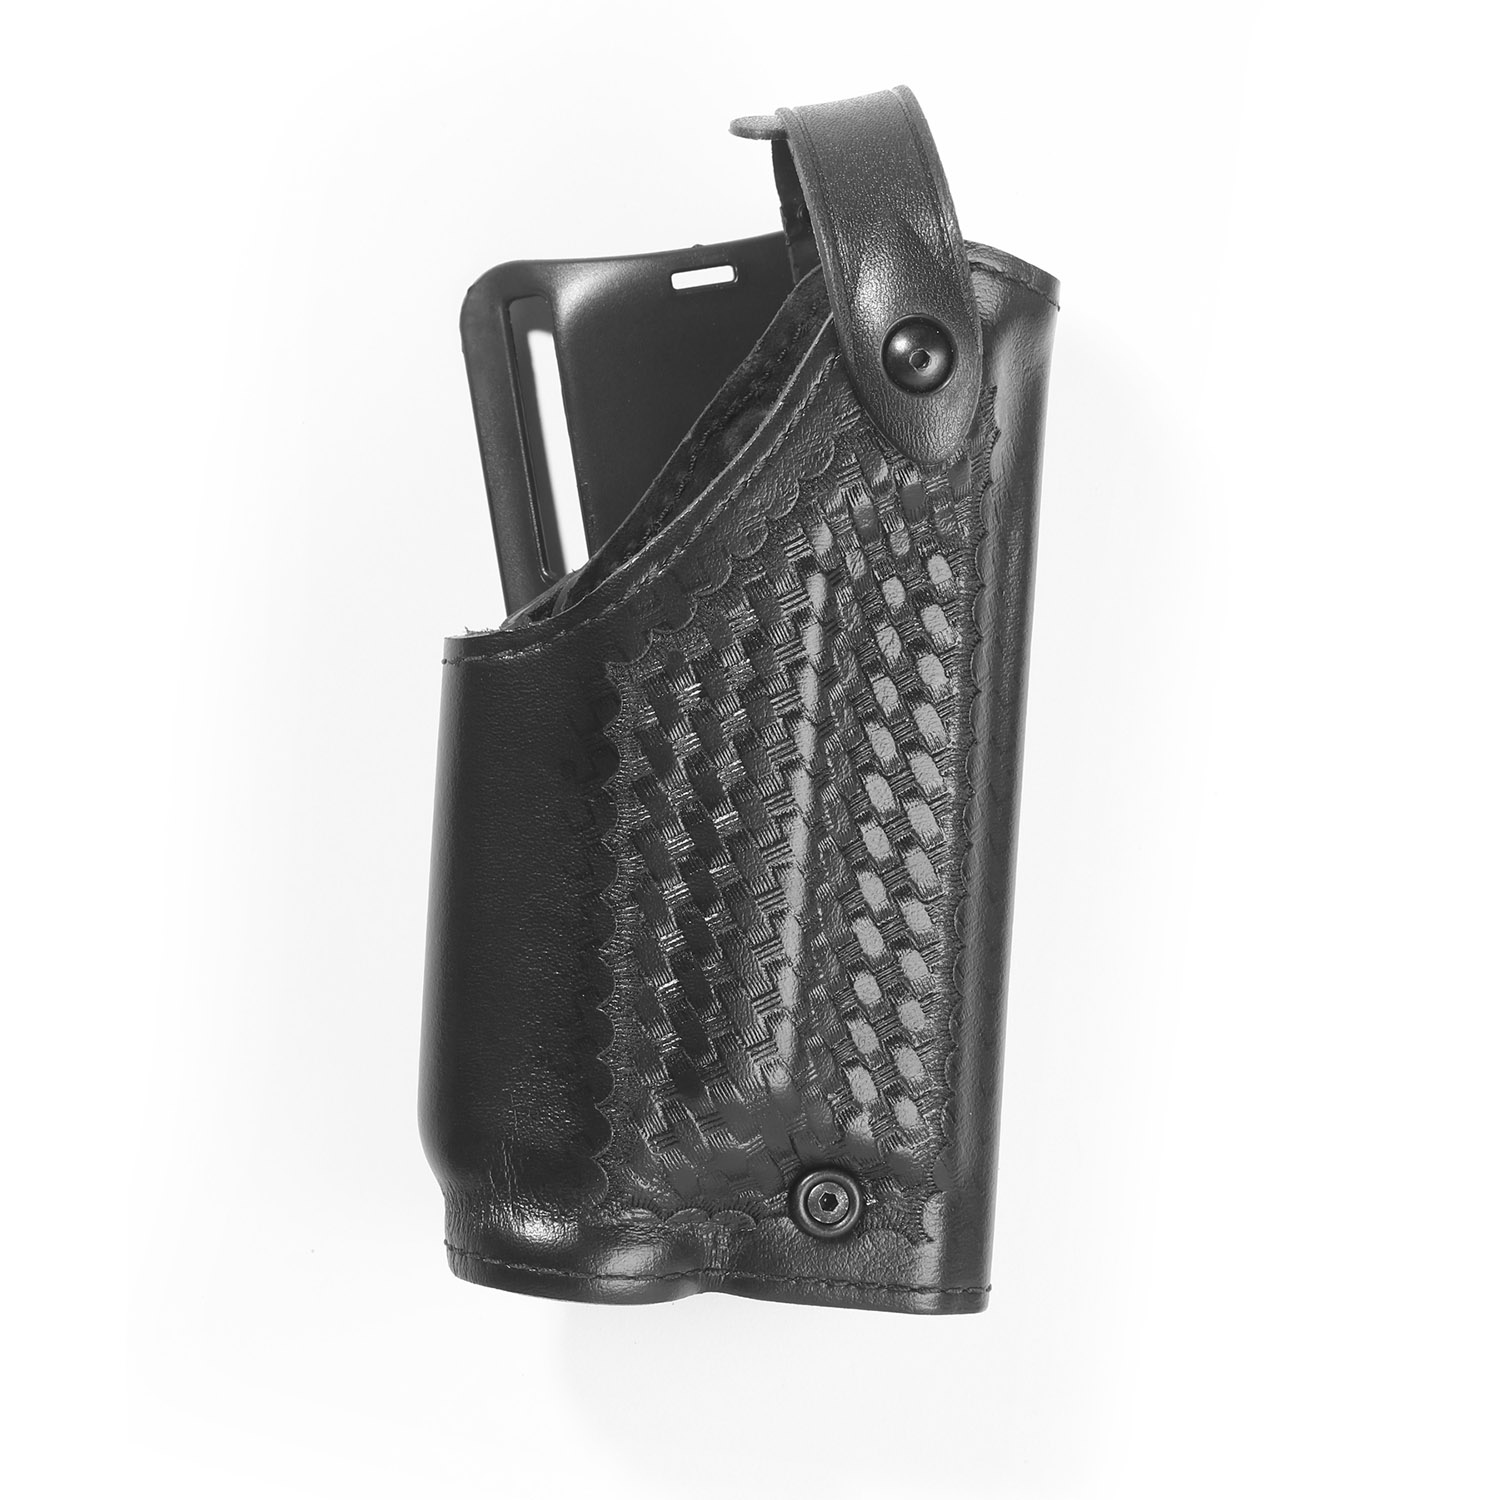 Safariland 6280 Holster for Gun with Light